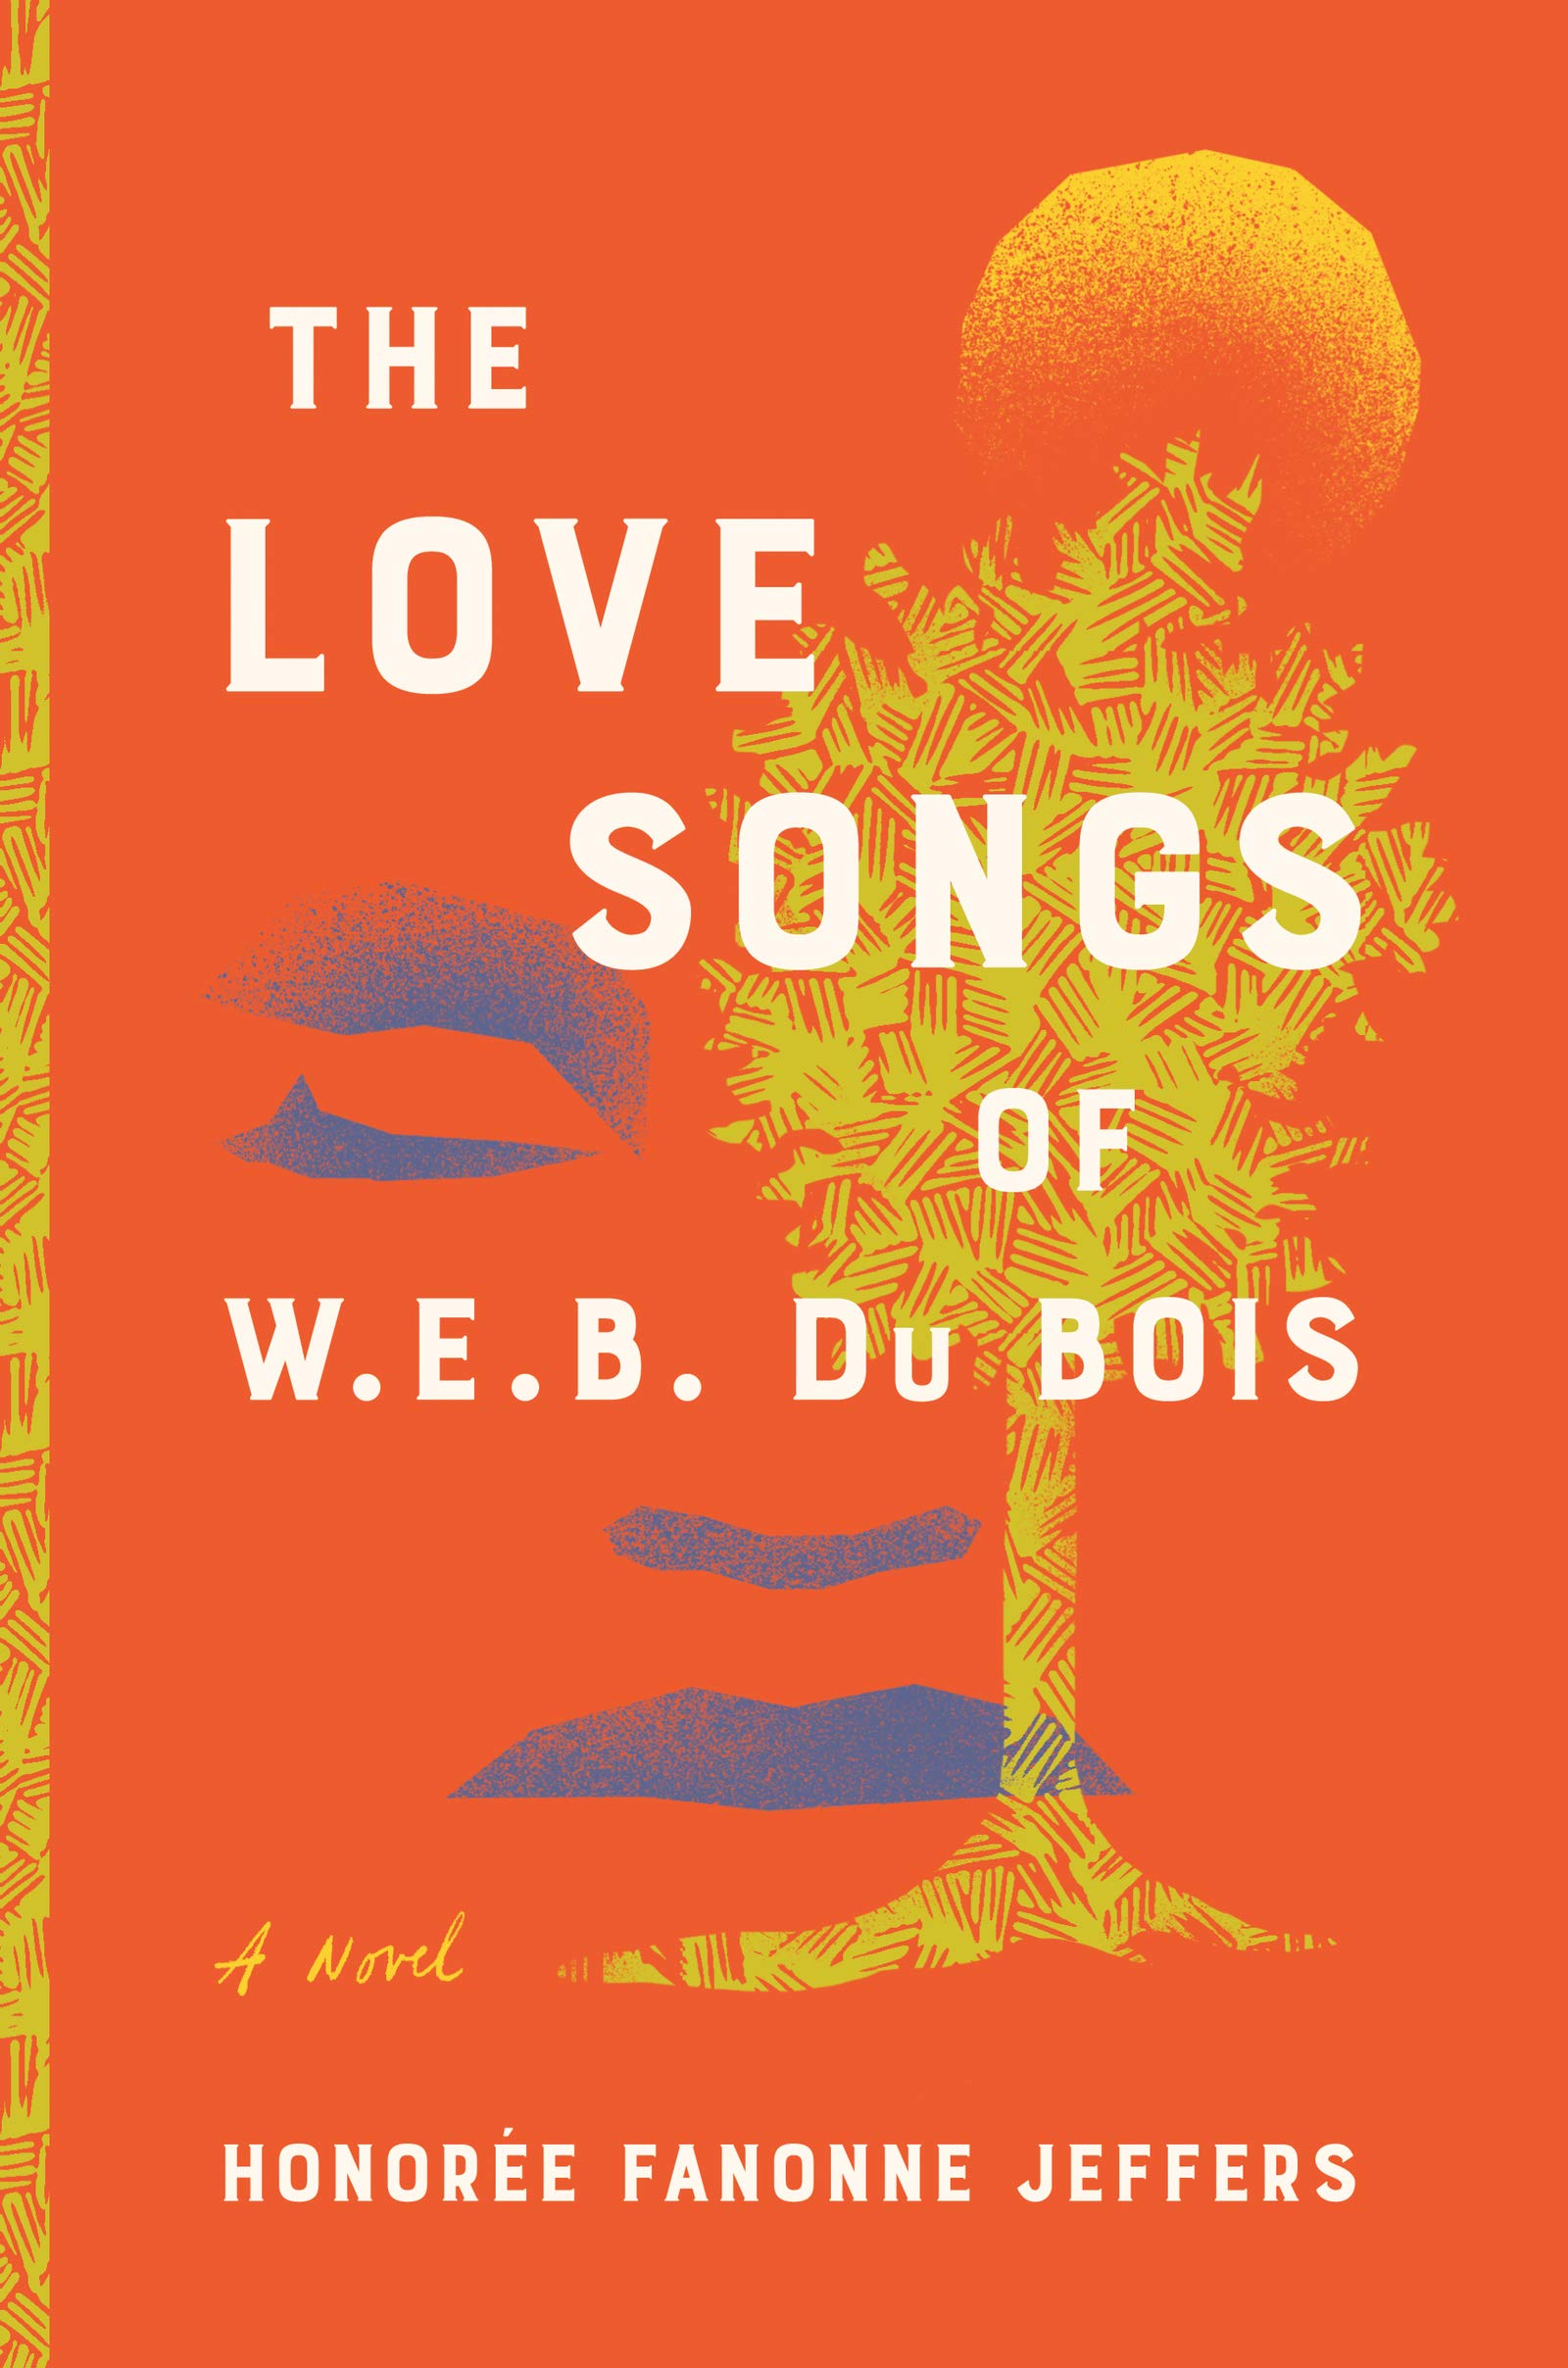 """Book Cover Image of """"The Love Songs of W.E.B. Du Bois"""""""